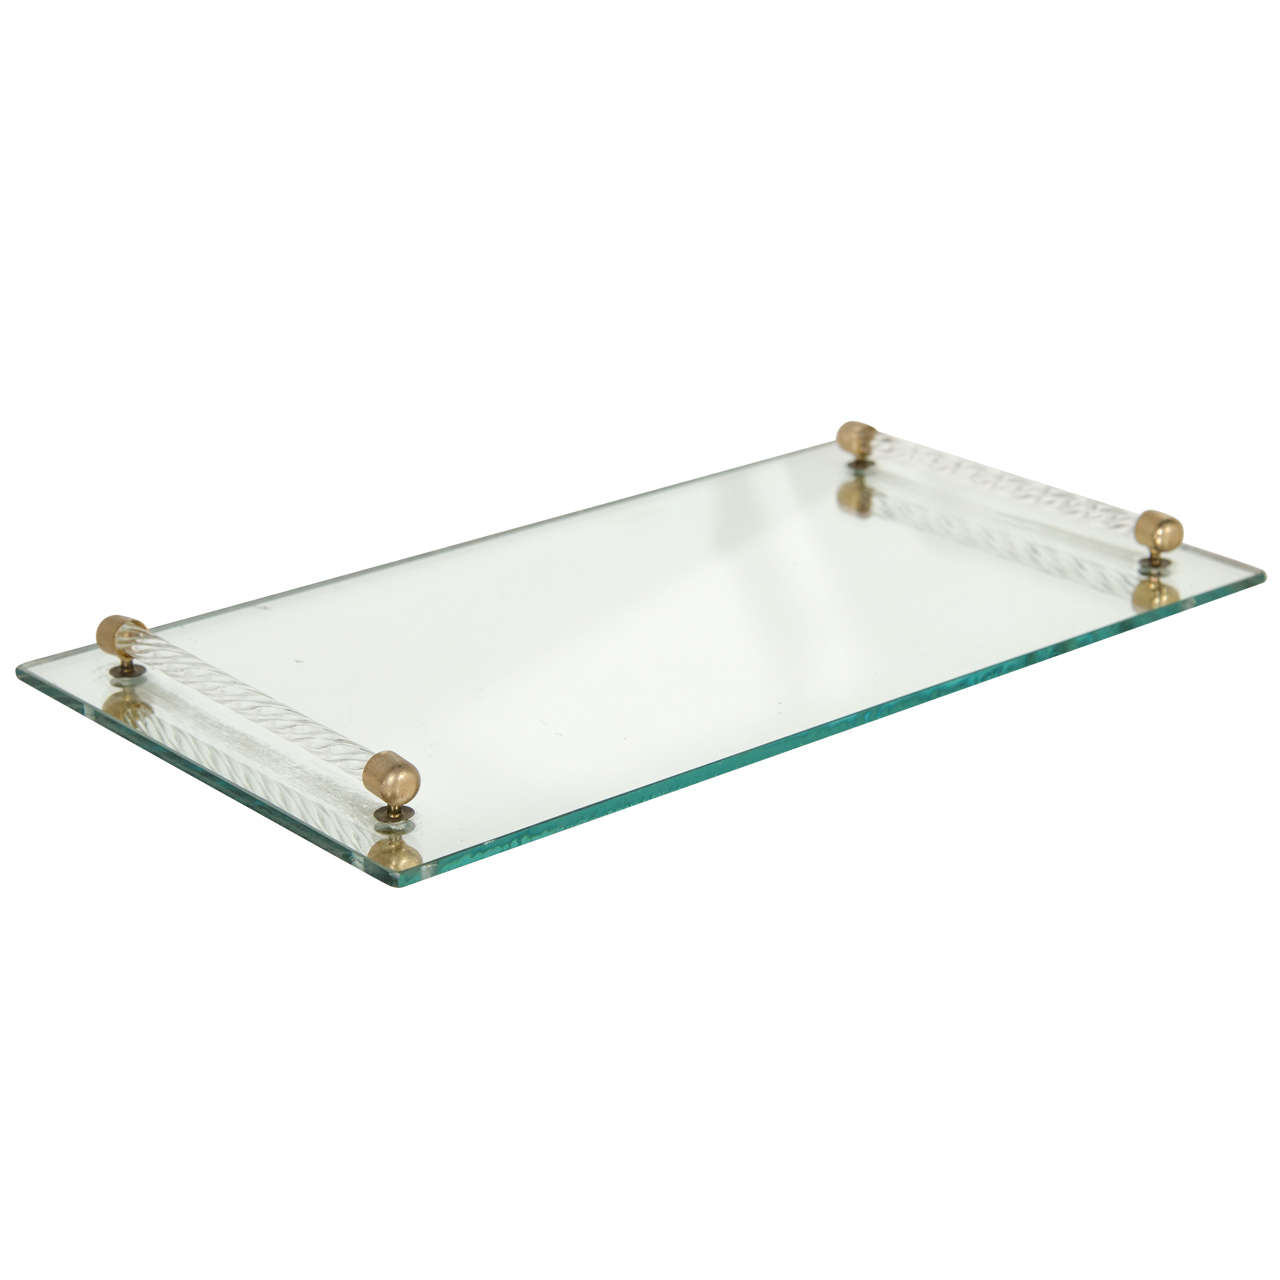 Breathtaking mirrored vanity tray